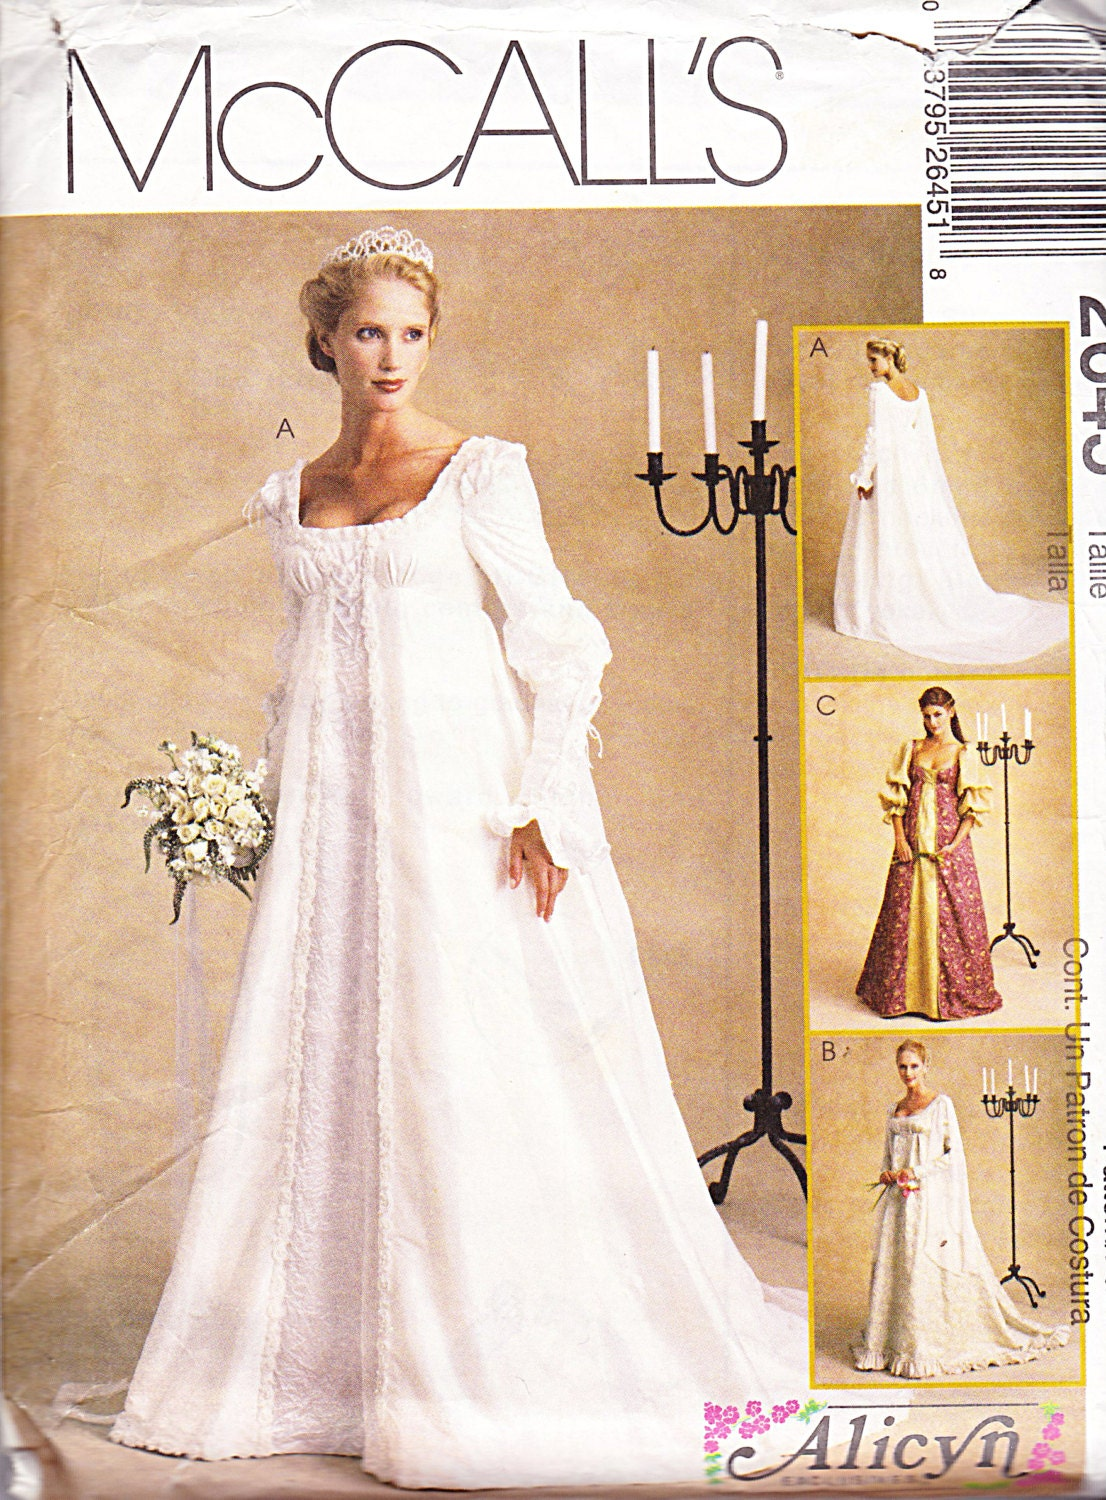 mccalls bridal gown pattern 2645 wedding dress by